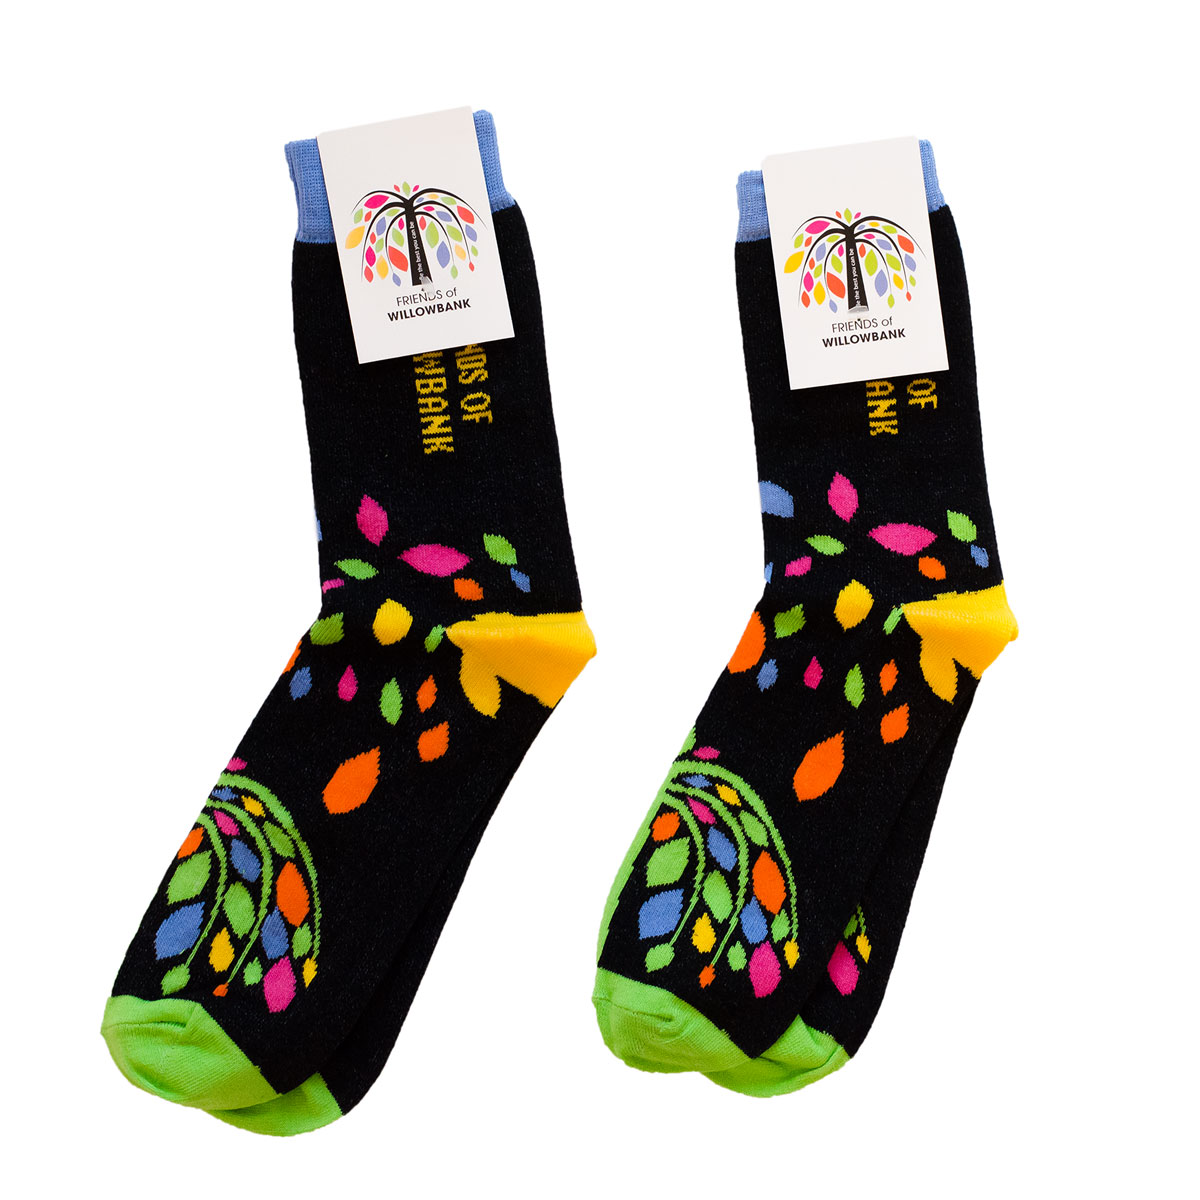 KS05 Crew socks showing man and woman si